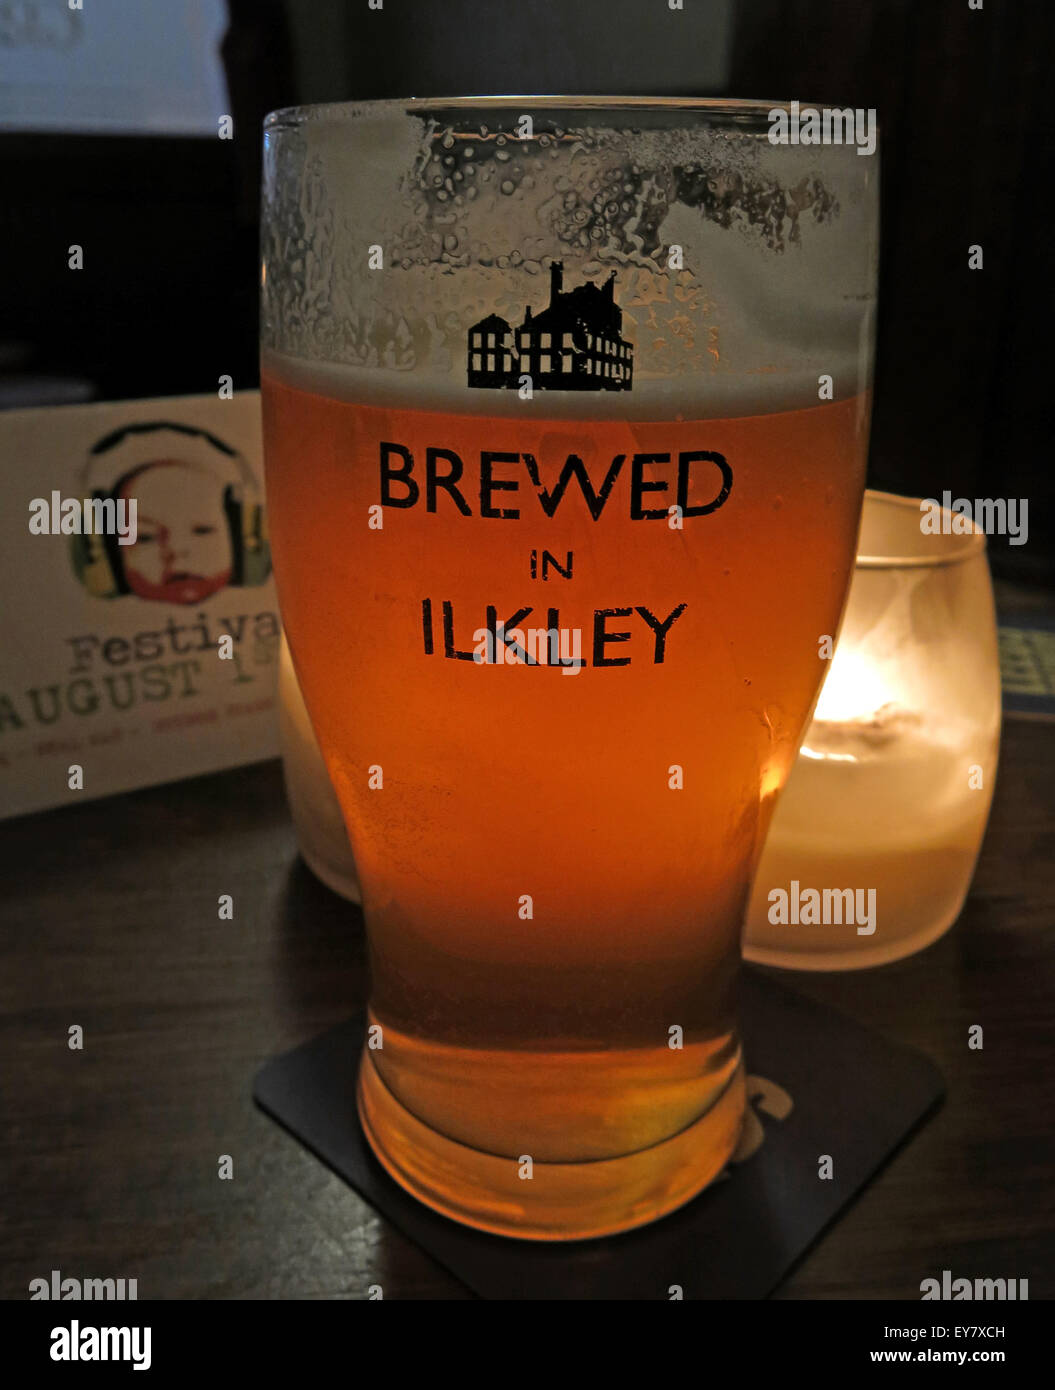 Beer Glass, Brewed in Ilkley logo,Craft brewery, West Yorkshire, England Stock Photo